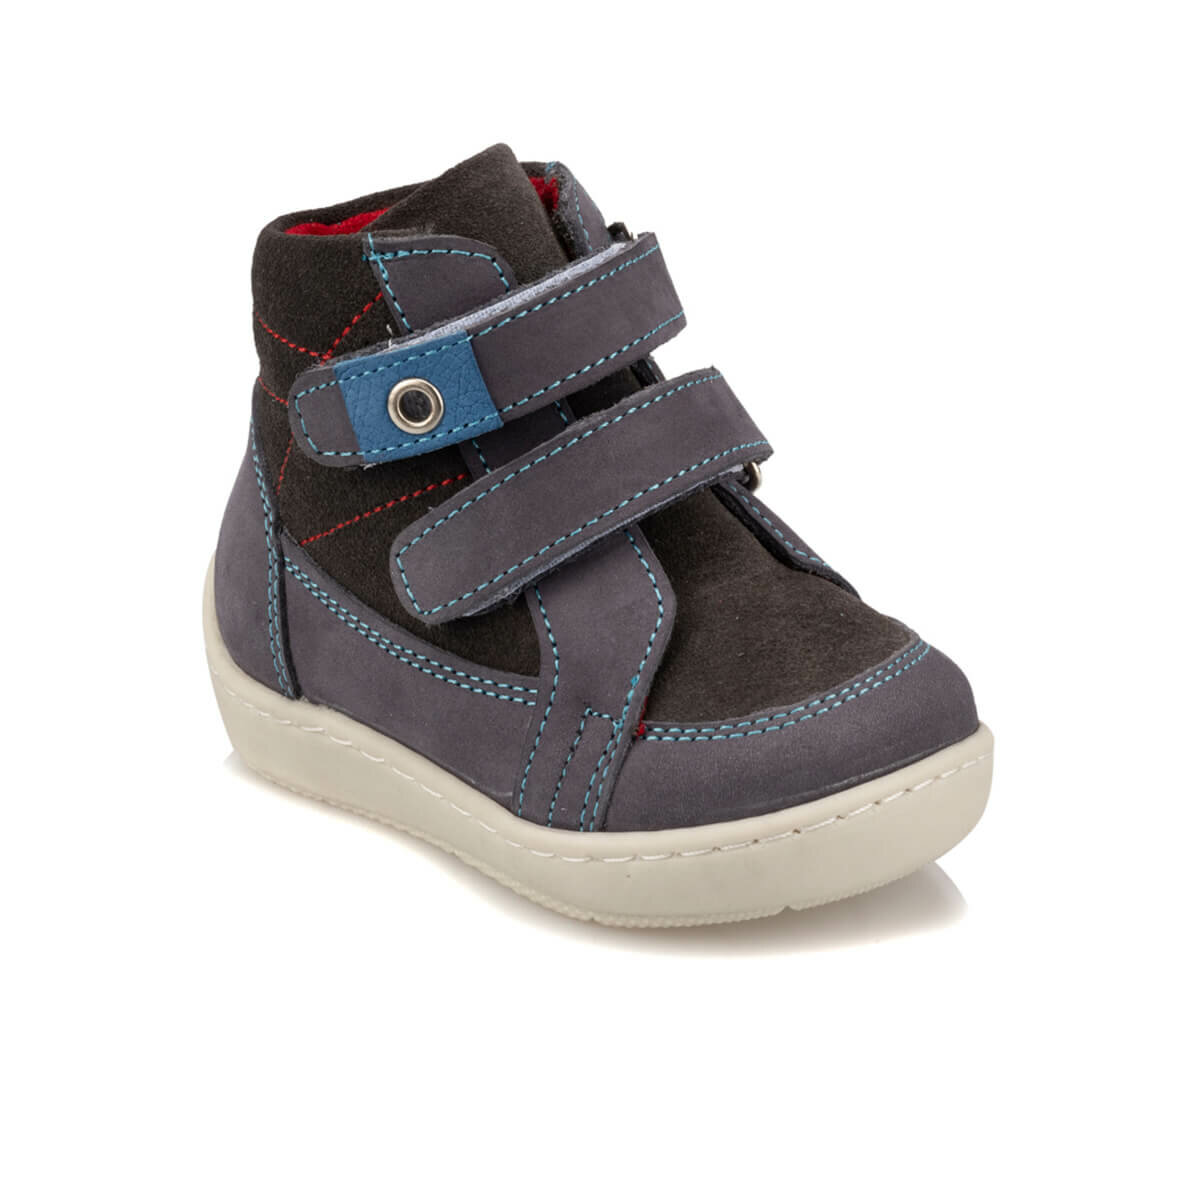 FLO 92.512016.I Gray Male Child Sneaker Shoes Polaris